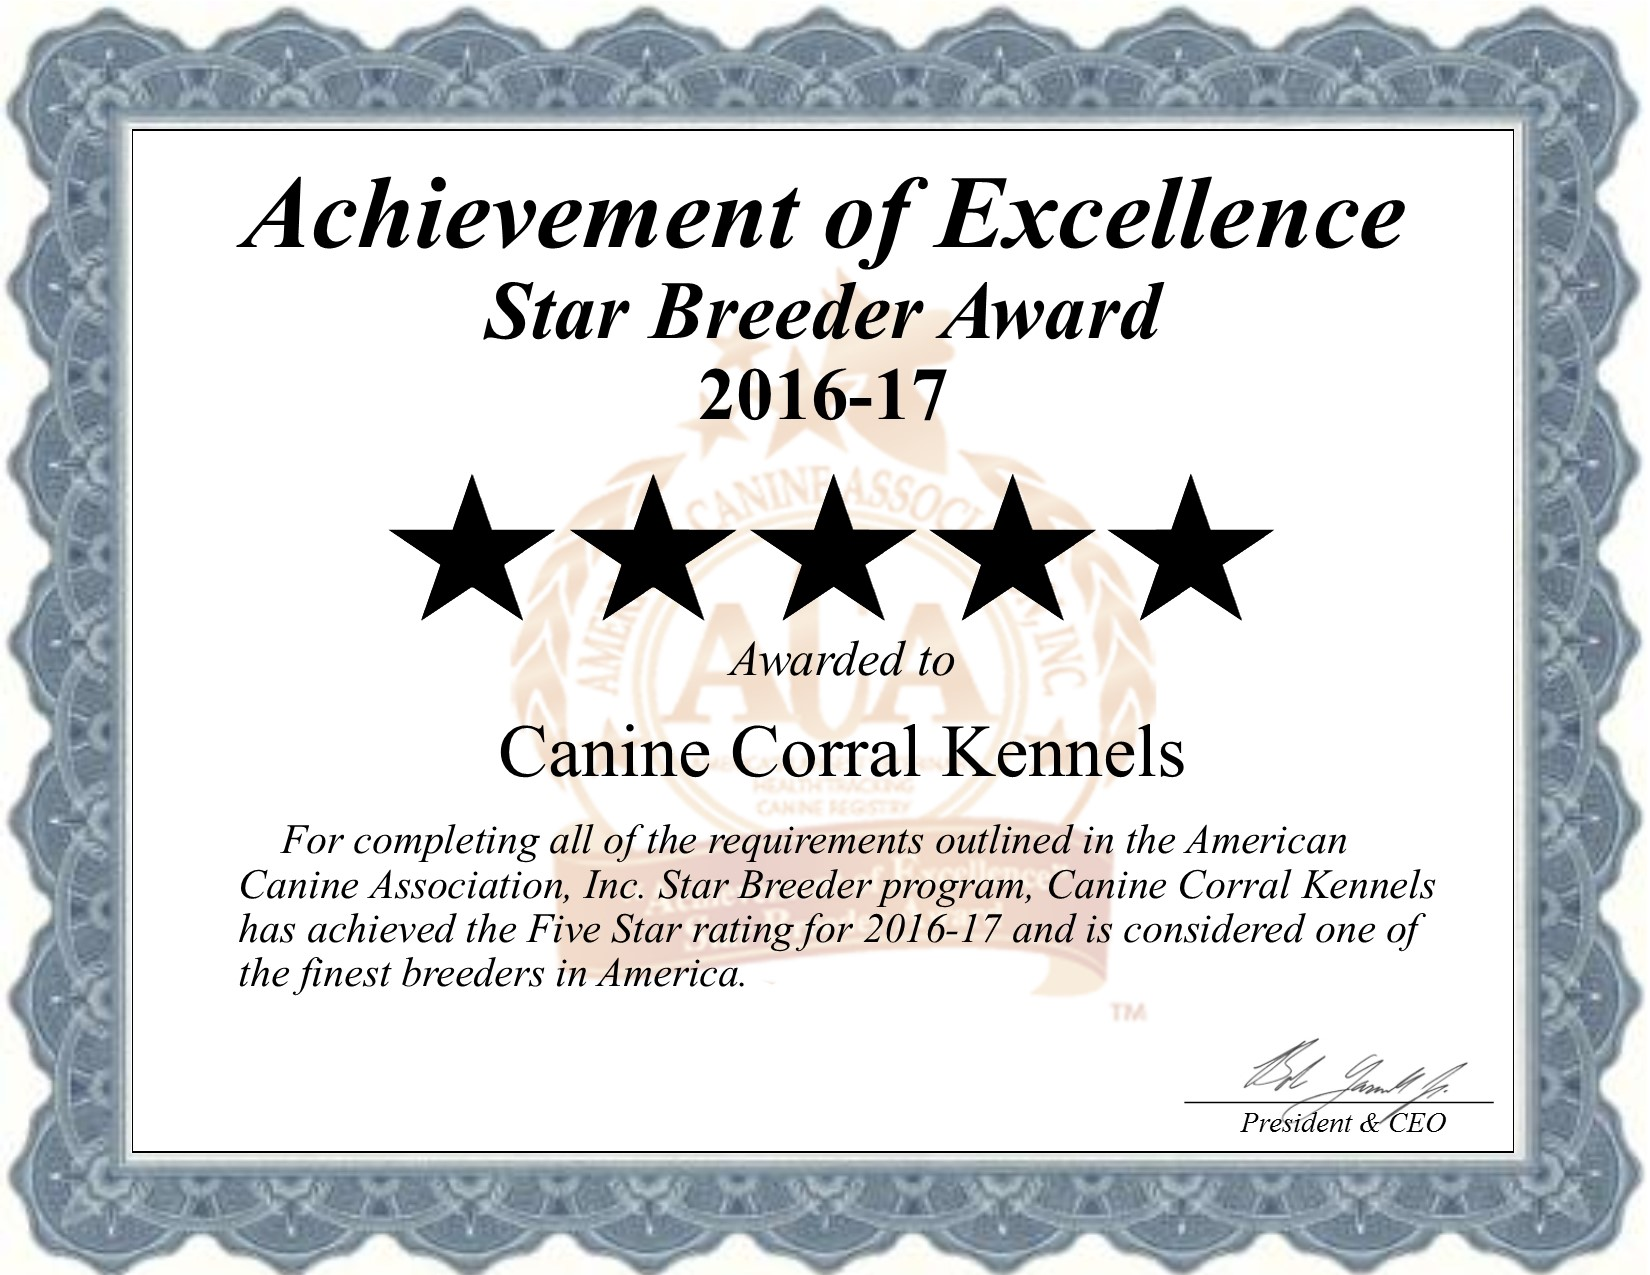 Canine, Corral, kennels, certificate, canine-corral-kennels